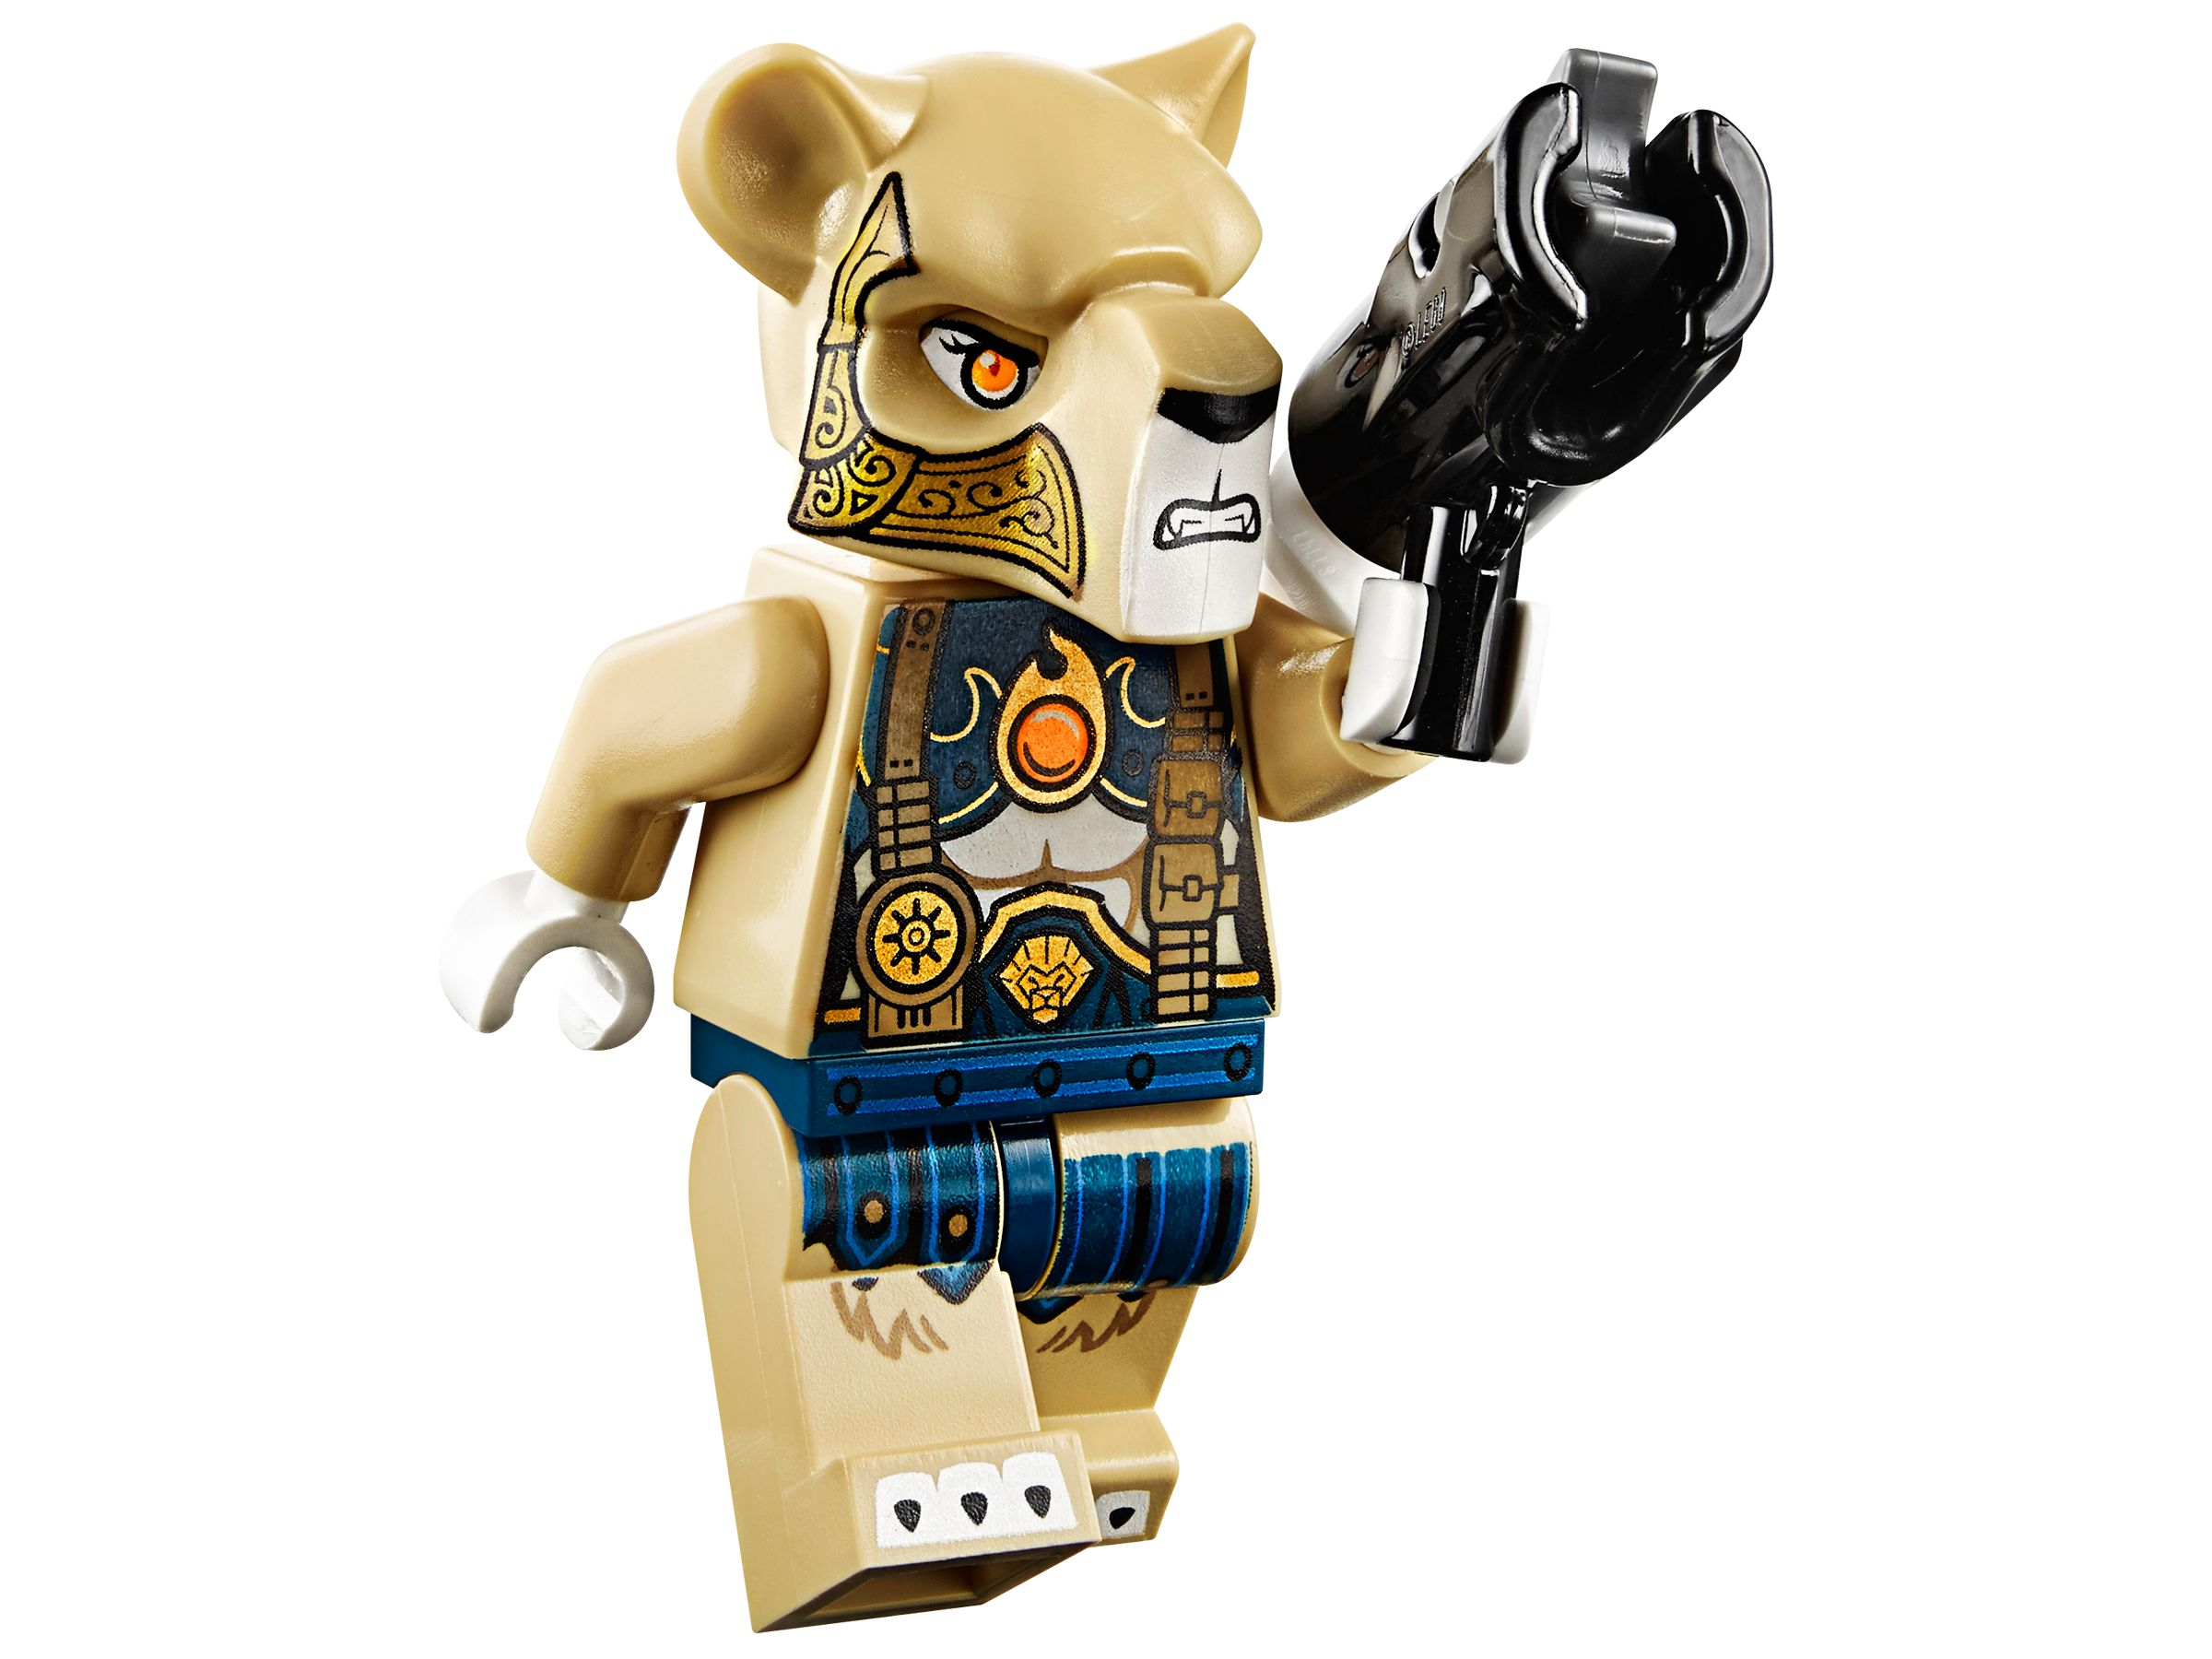 LEGO Legends Of Chima 70229 Löwenstamm-Set LEGO_70229_alt4.jpg